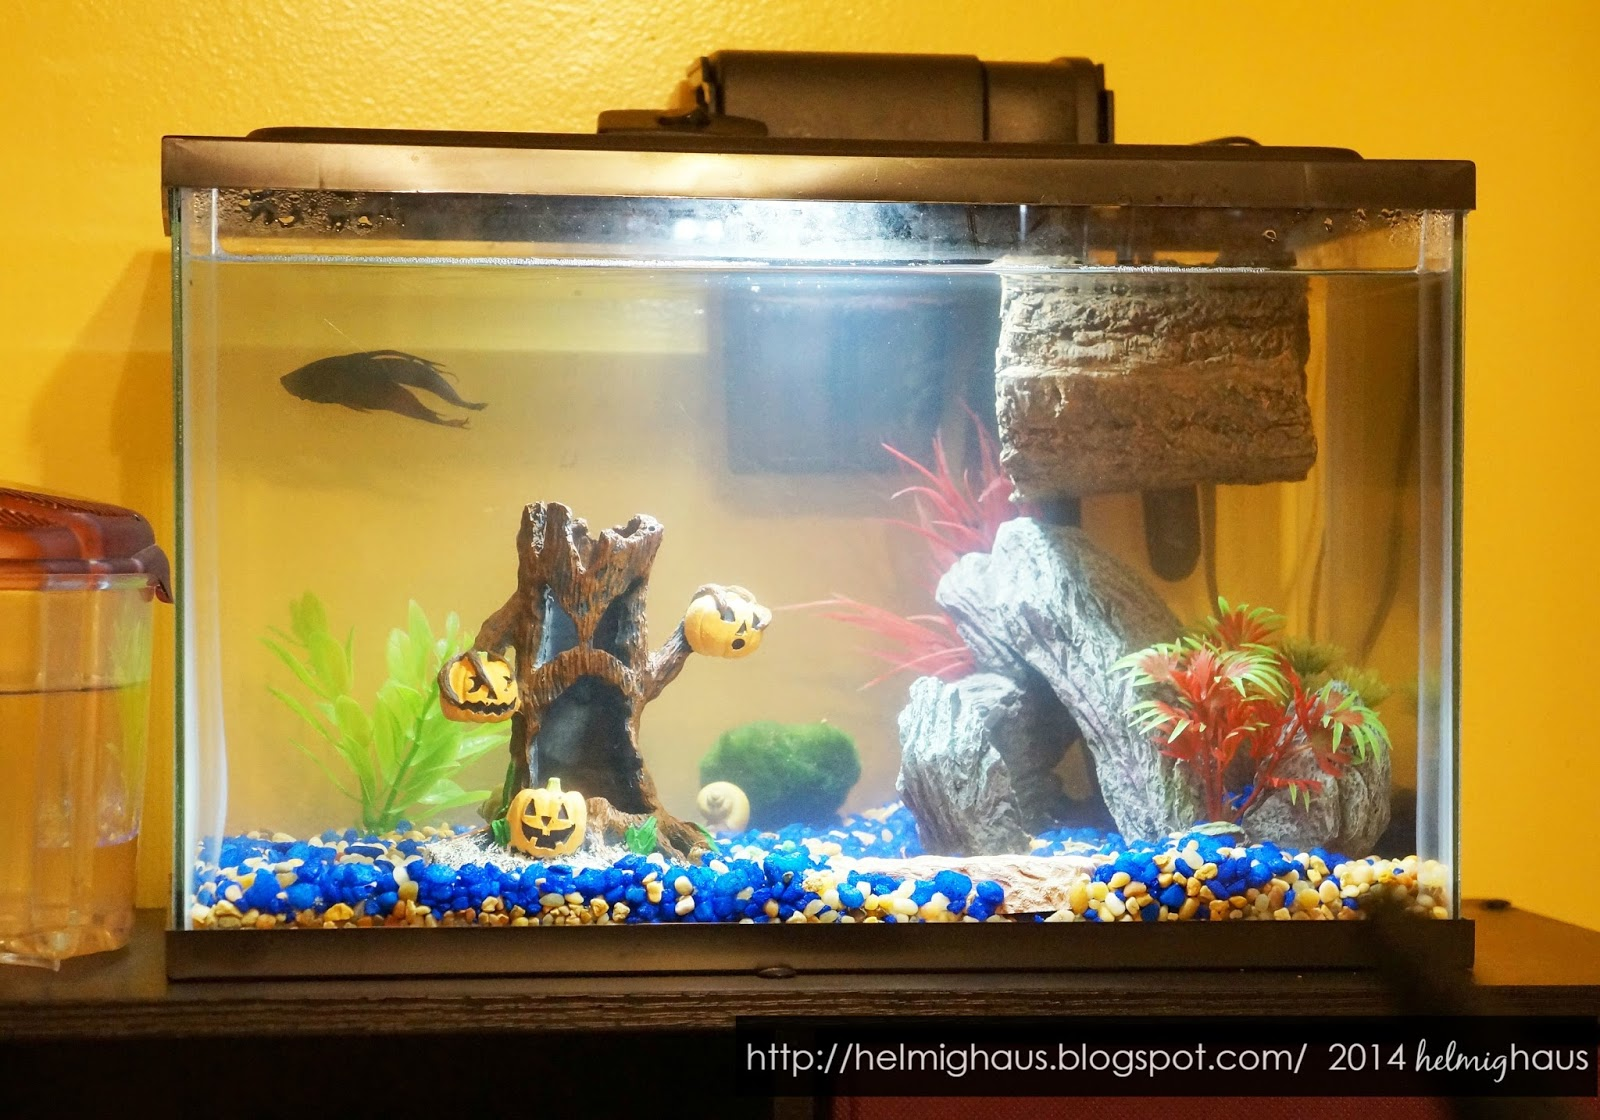 Fish tank halloween decorations fish tank halloween for How to decorate fish tank